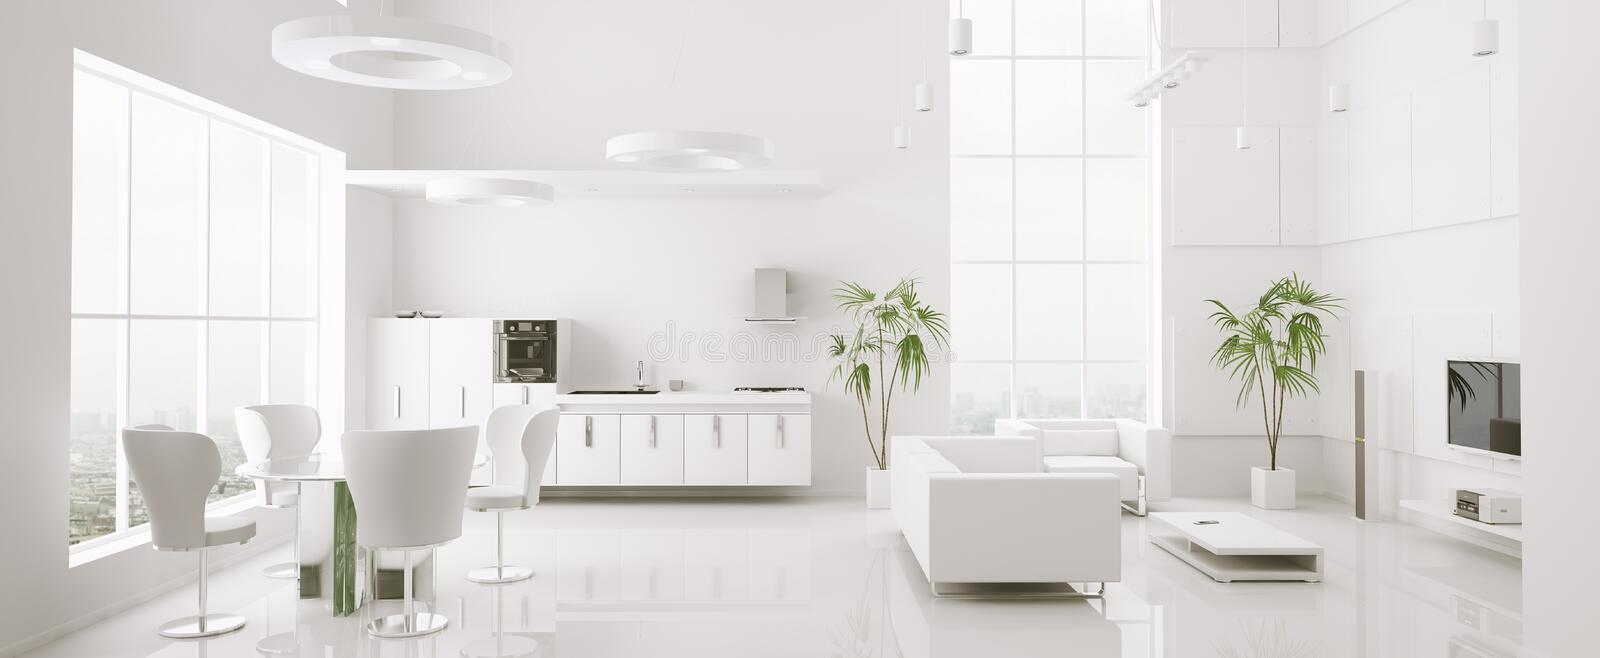 Interior of modern apartment panorama 3d render stock illustration